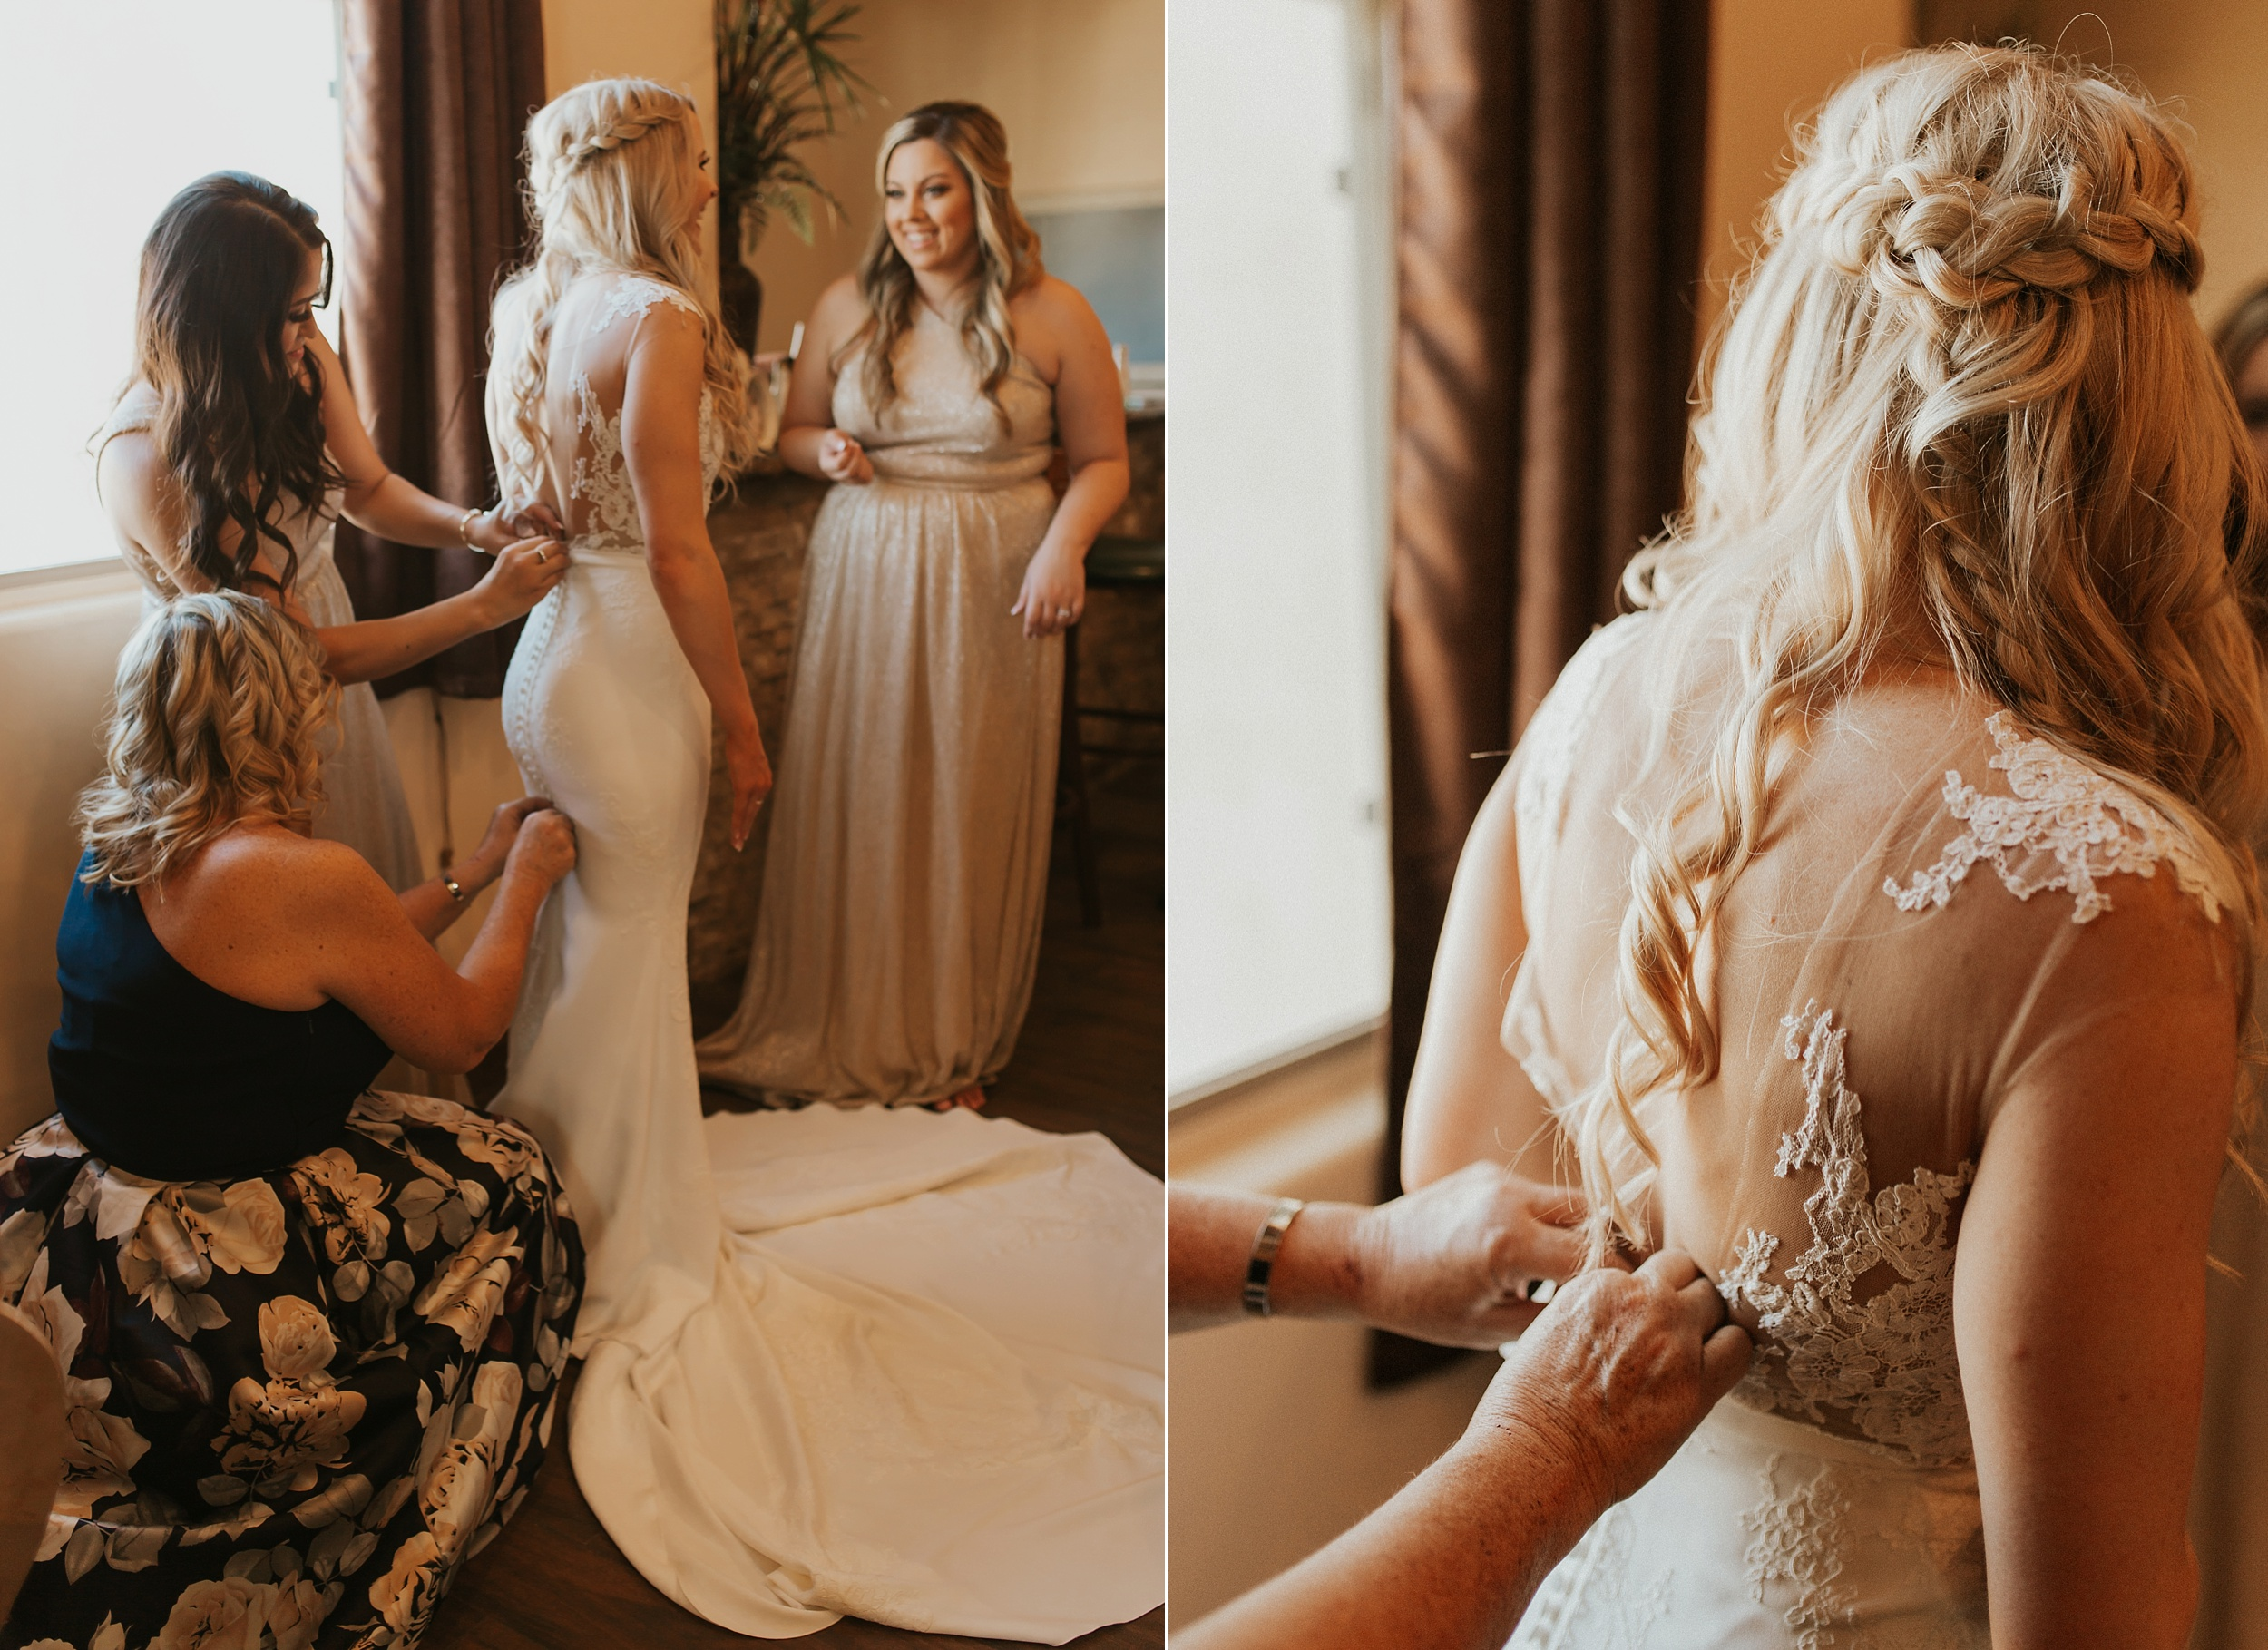 Meg+Bubba_Wedding_GettingReady_Arizona-340.jpg